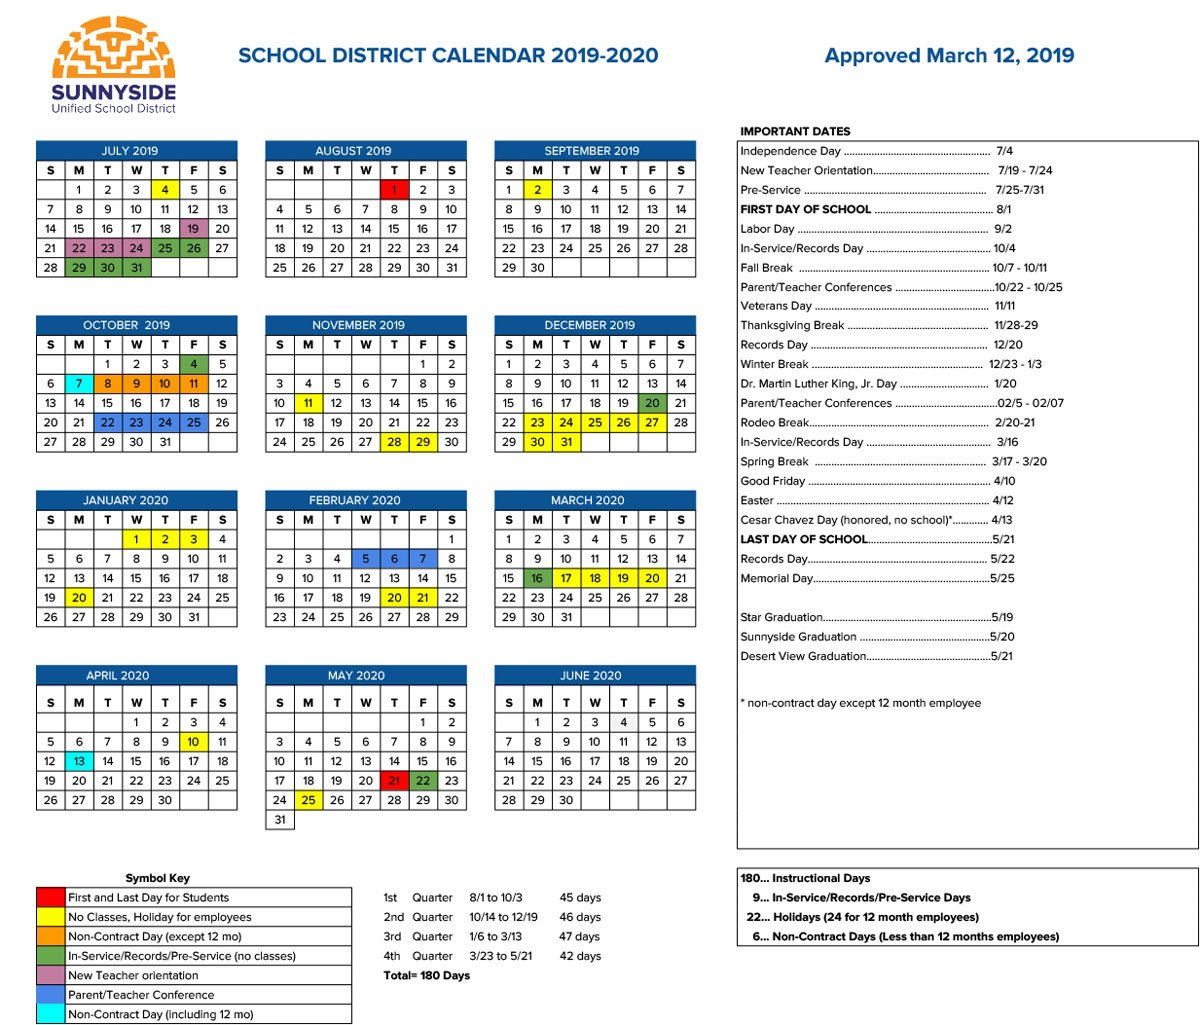 Academic Calendar | Sunnyside Unified School District School District 2 Calendar 2019